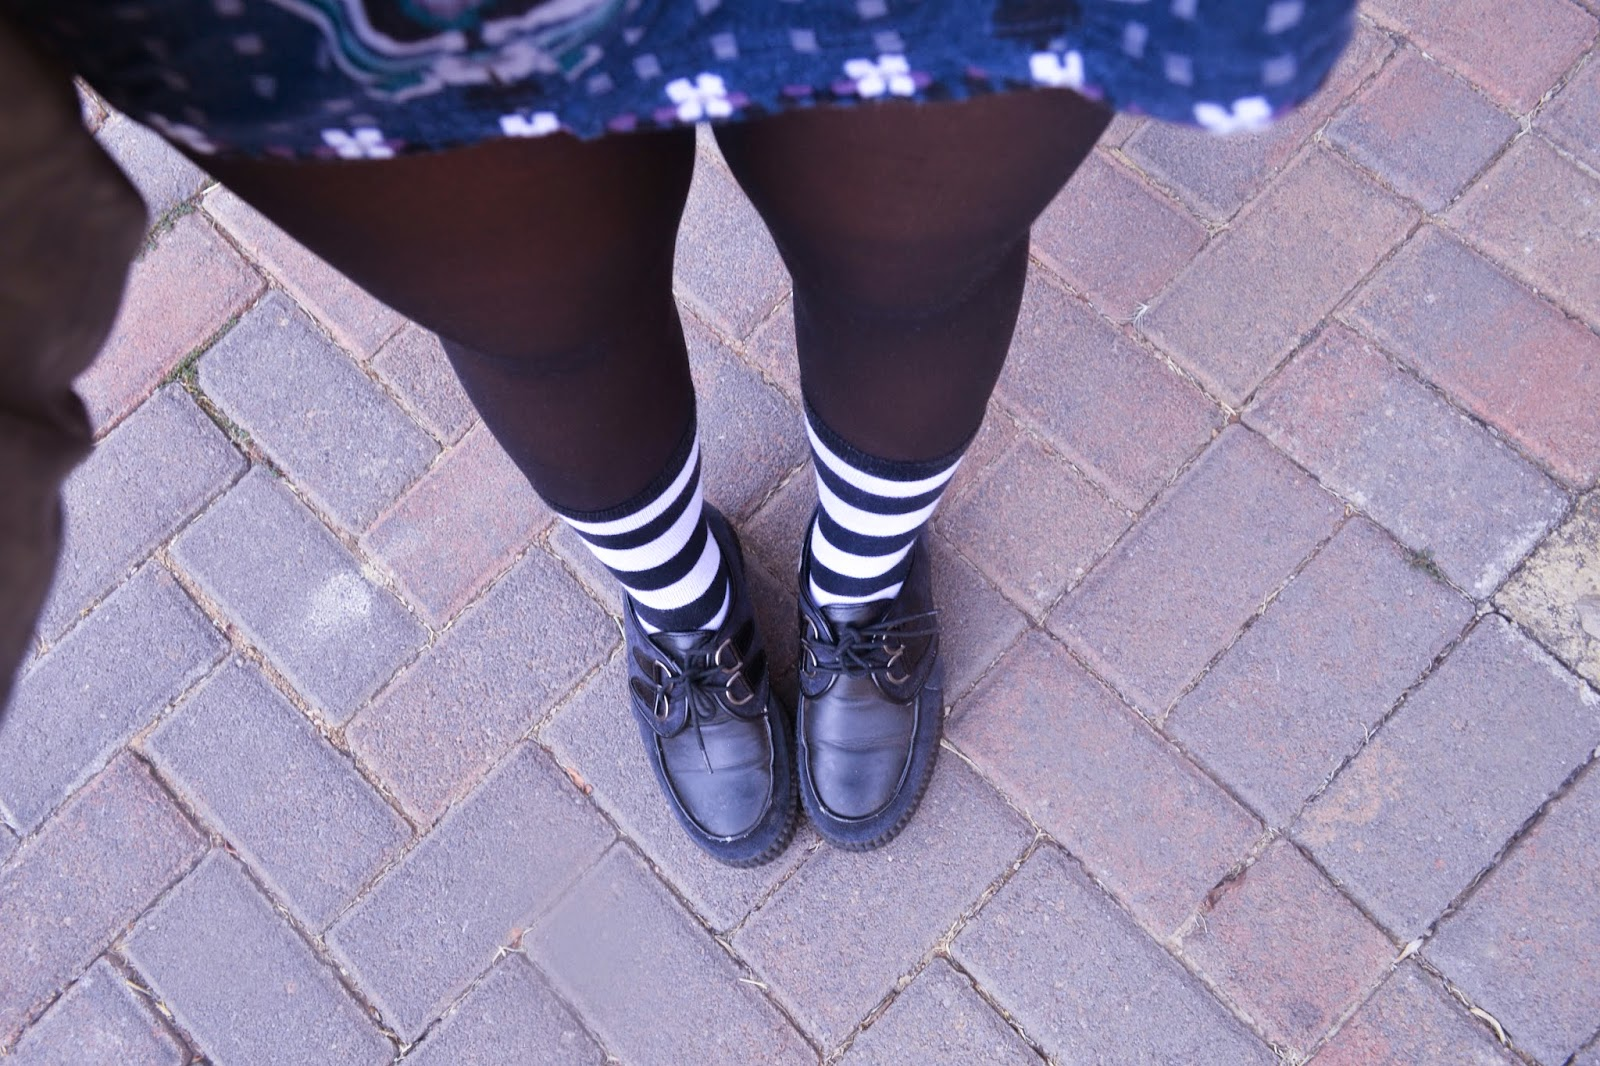 navy creepers socks over tights